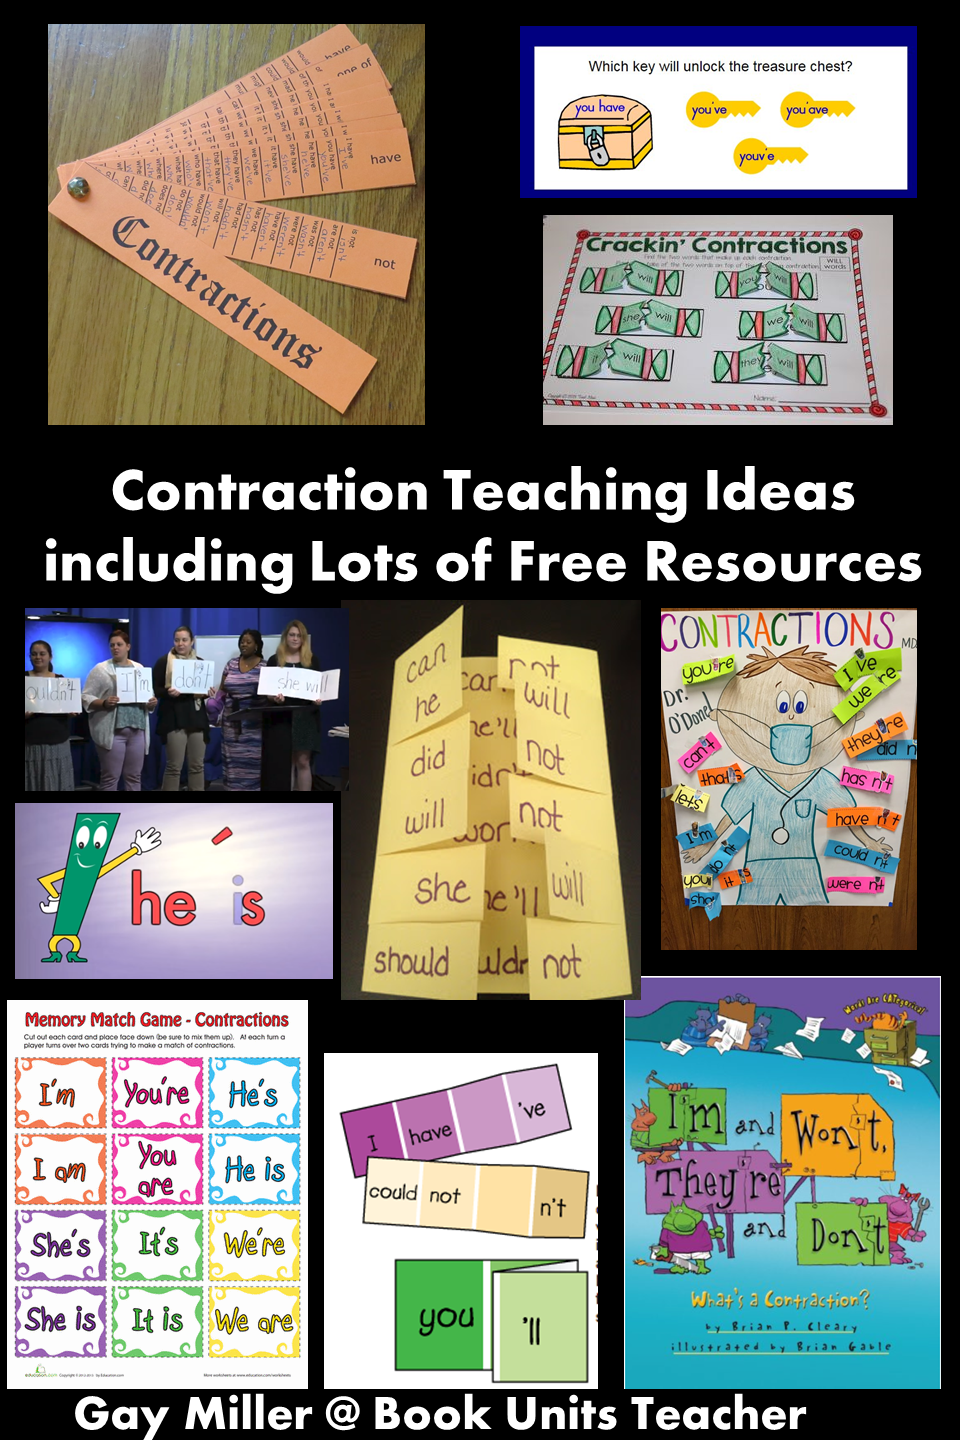 Contraction Teaching Ideas including Lots of Free Resources